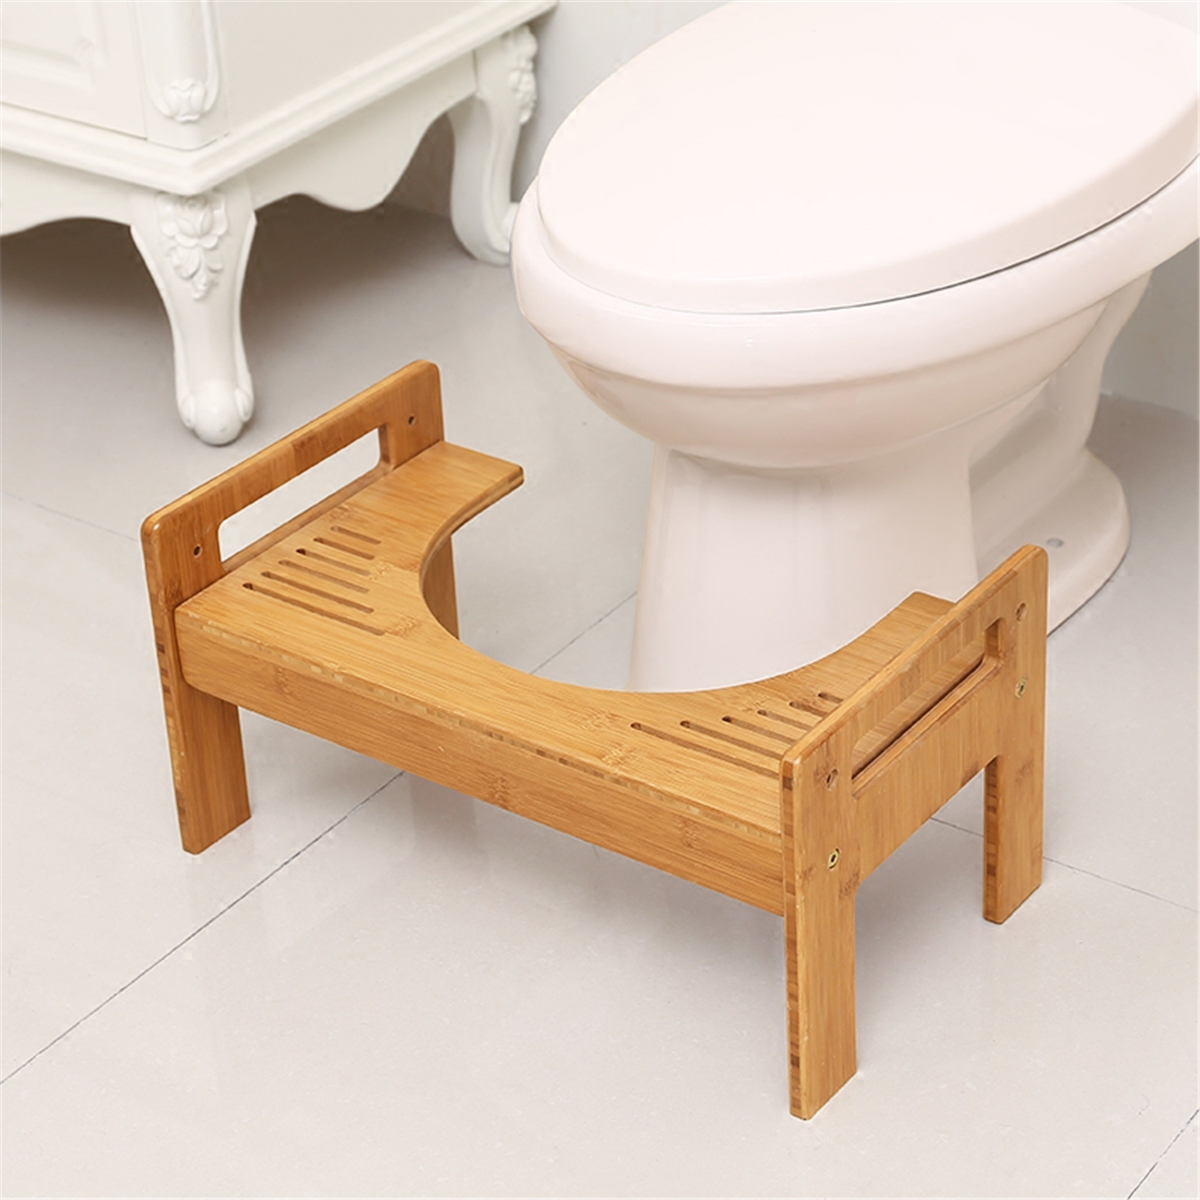 Wooden Thicken Round Toilet Foot Stool Home Crouch Hole